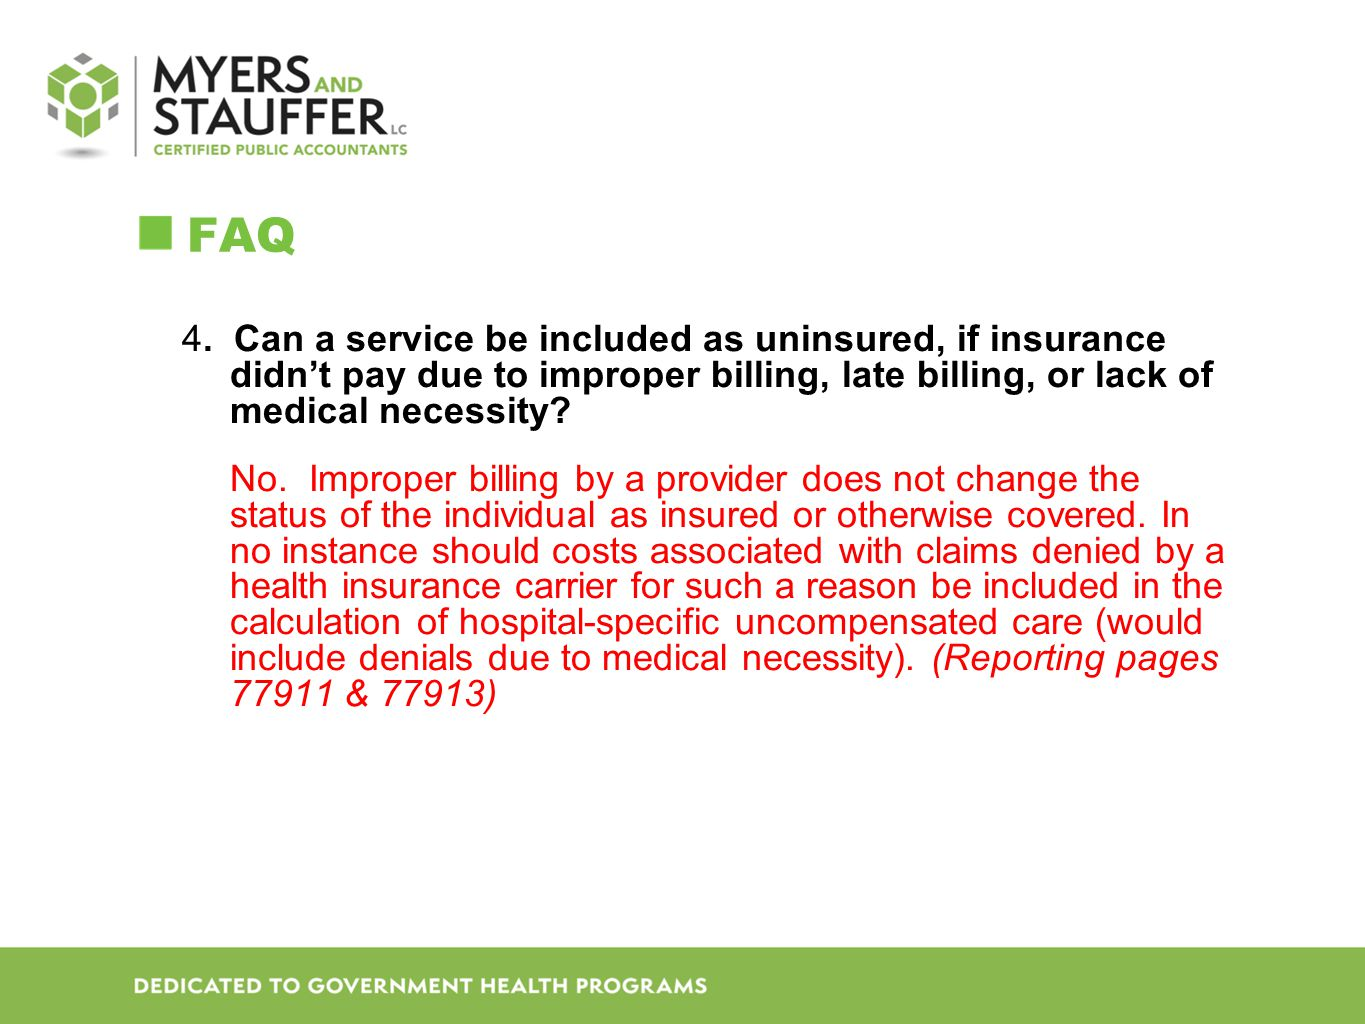 FAQ 4. Can a service be included as uninsured, if insurance didn't pay due to improper billing, late billing, or lack of medical necessity